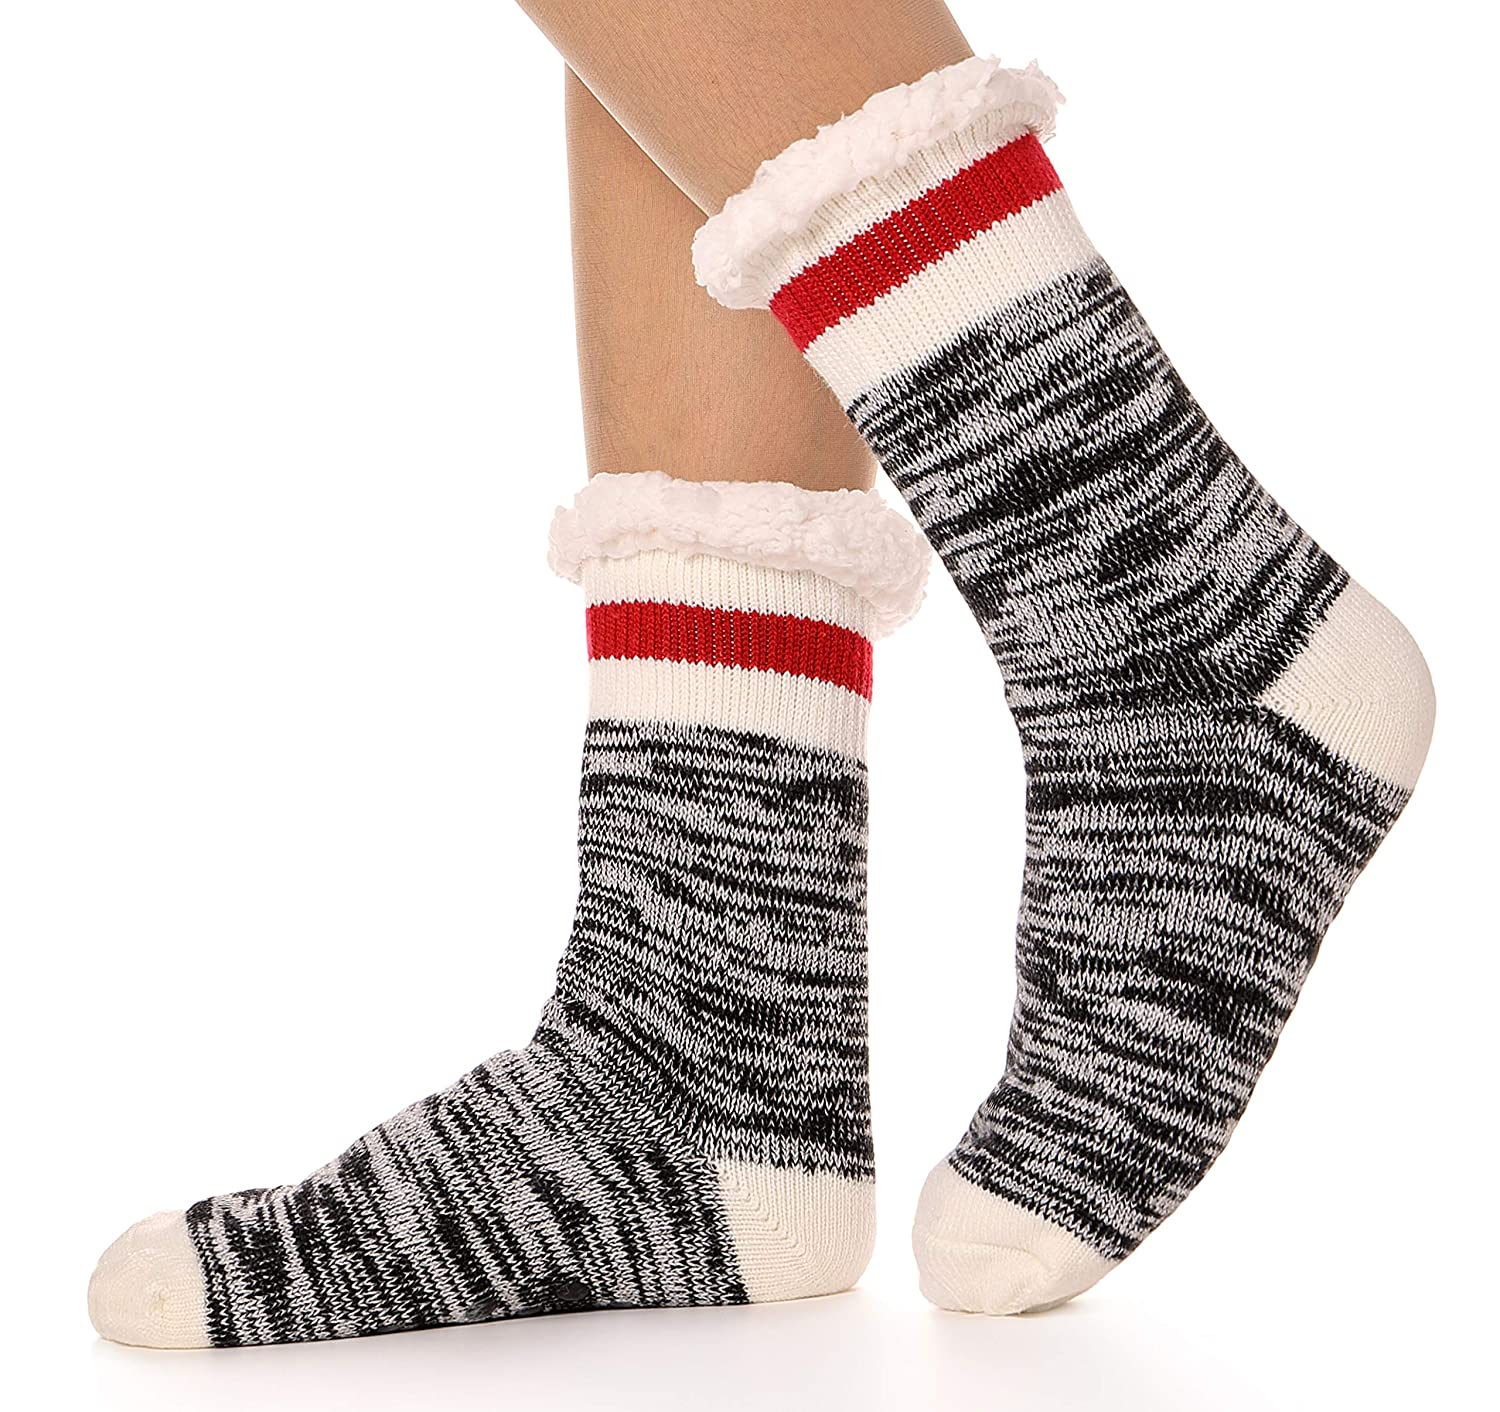 Womens Fuzzy Slipper Socks Warm Knit Thick Soft Heavy Fleece lined Christmas Stockings Winter Socks